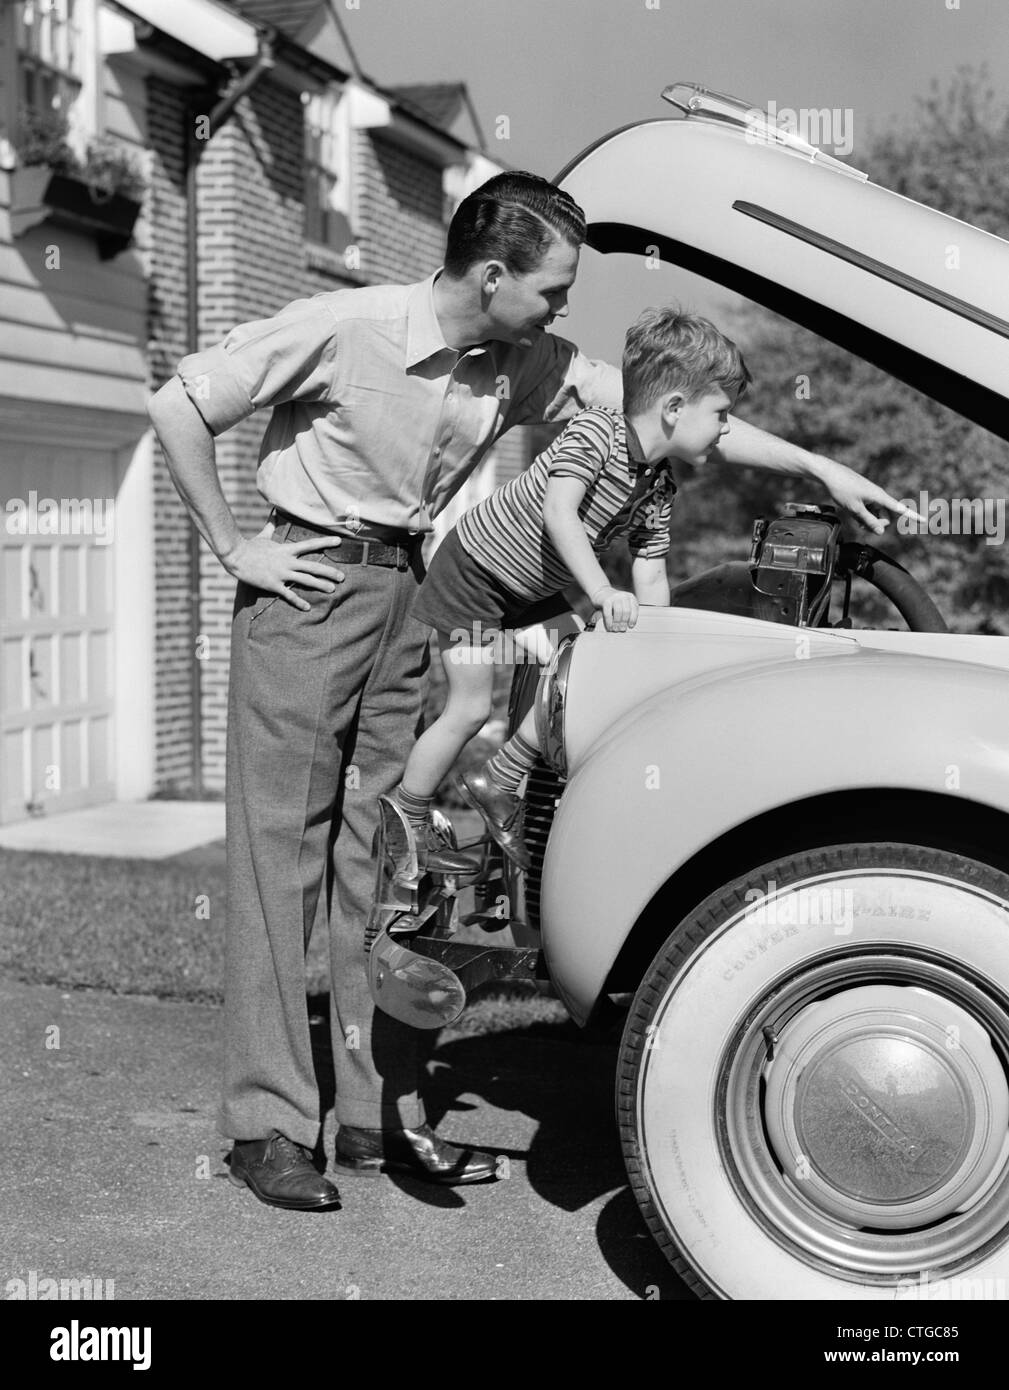 Old Fashioned Cars >> 1940s FATHER & SON CHECKING UNDER HOOD OF CAR IN DRIVEWAY Stock Photo, Royalty Free Image ...